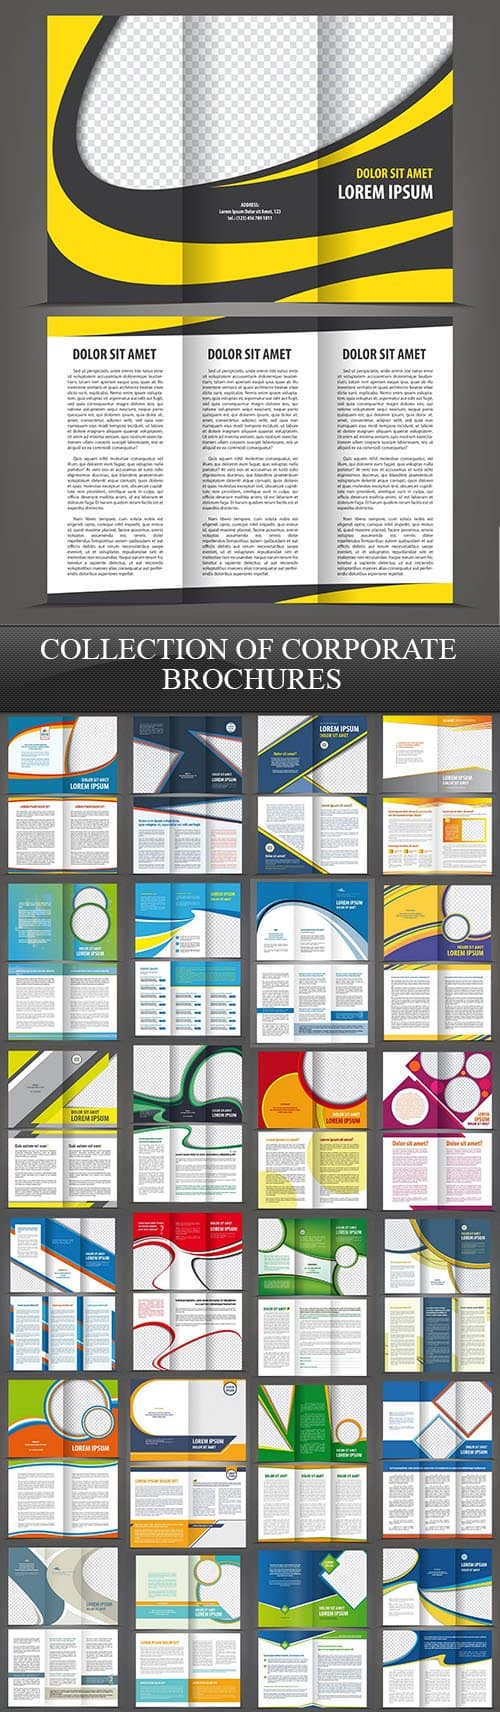 Collection of Corporate Brochures, 25xEPS